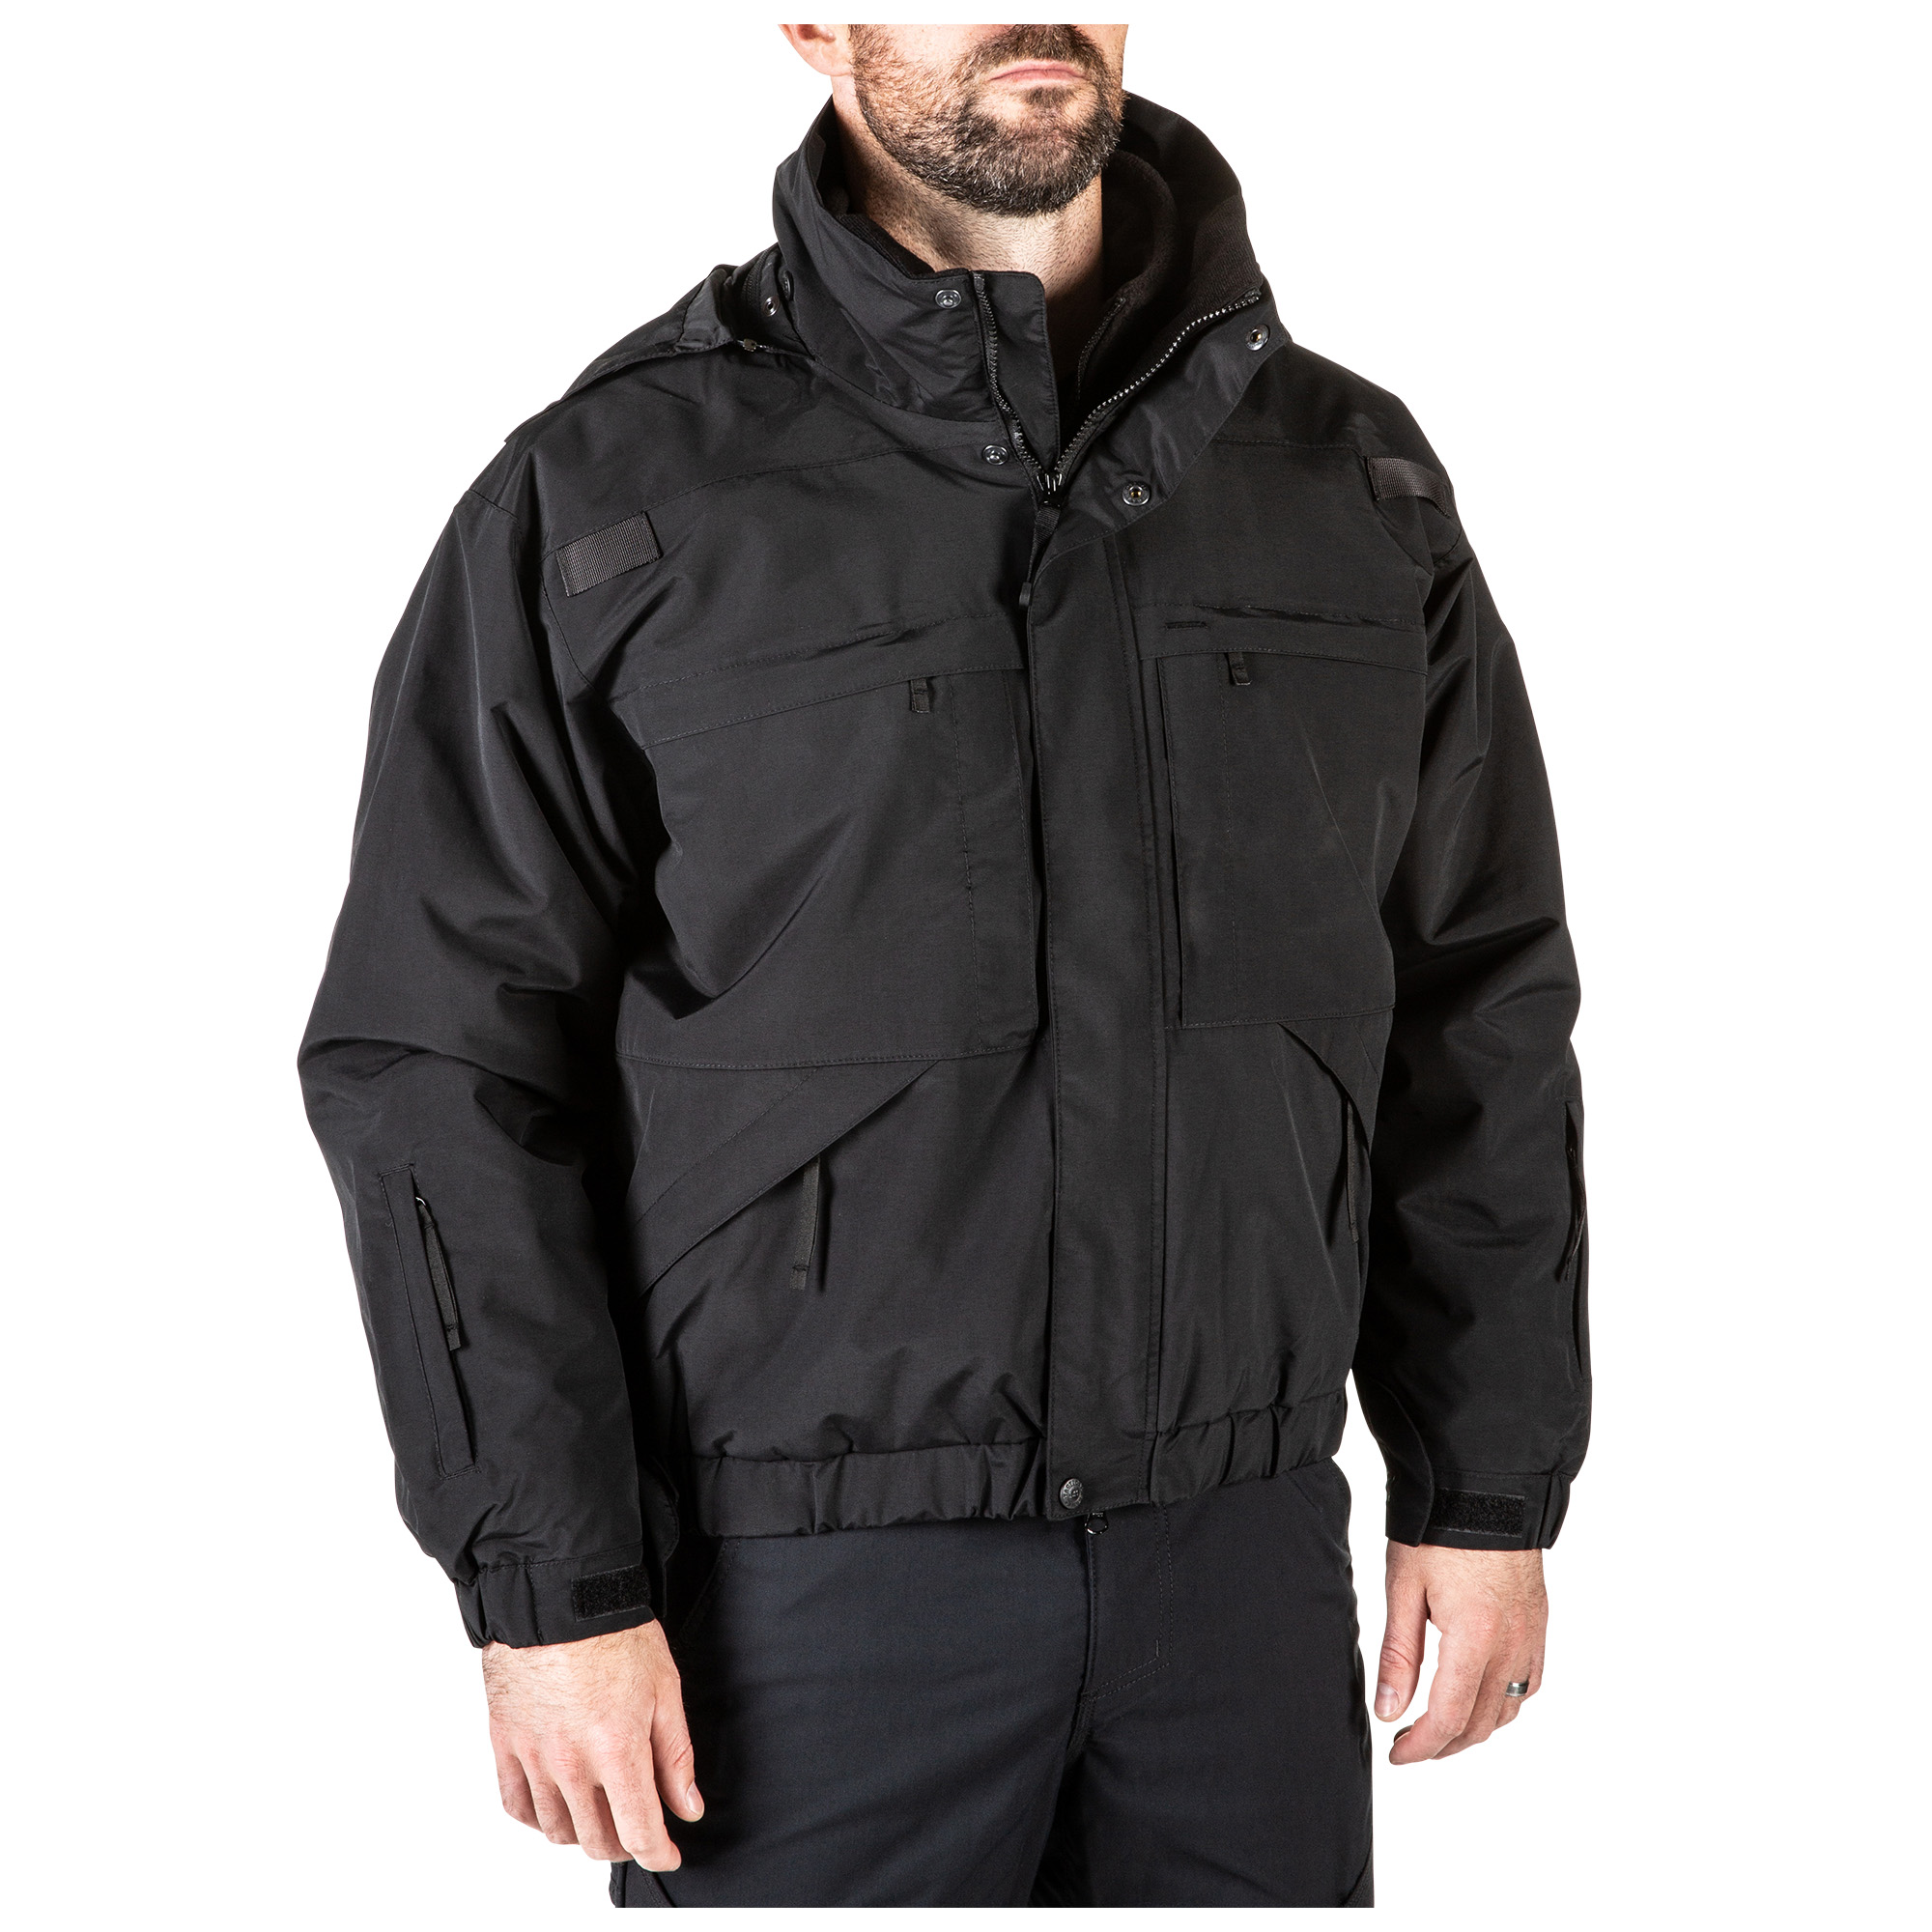 5.11 Tactical Men's 5-in-1 Jacket™ (Black)